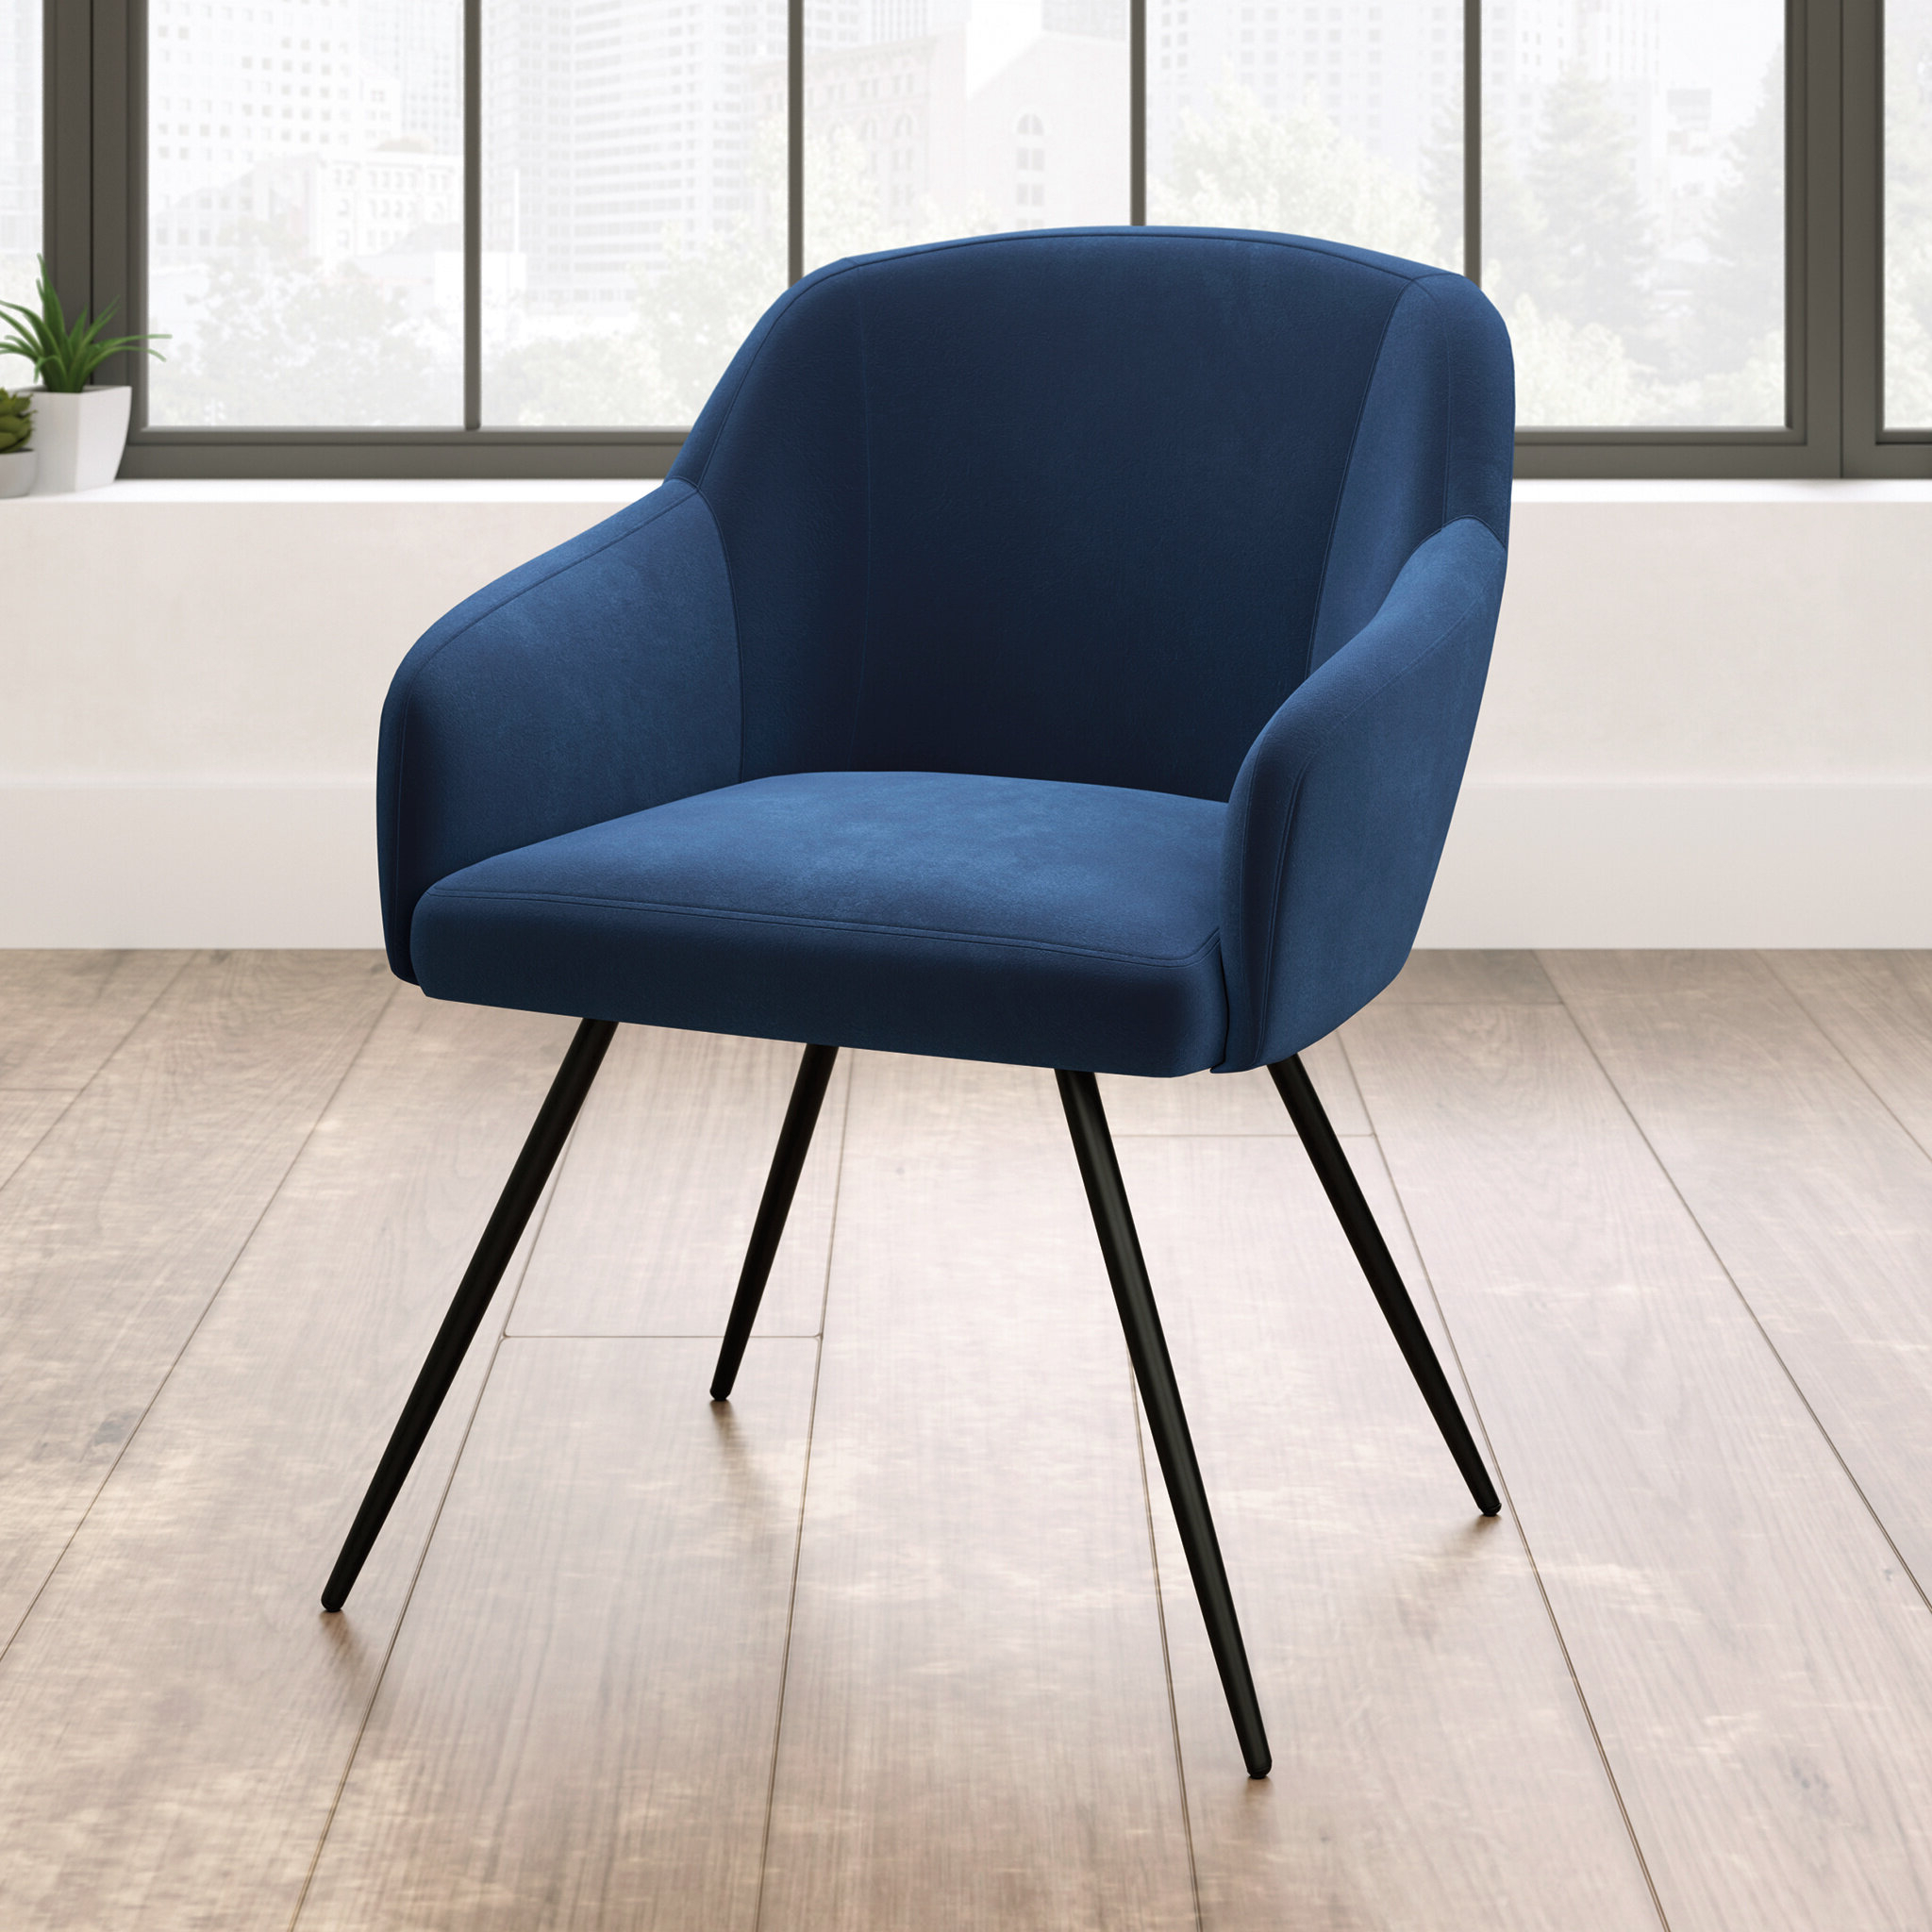 Hanner Polyester Armchairs With Widely Used Lacoste Hanner Armchair (View 3 of 20)